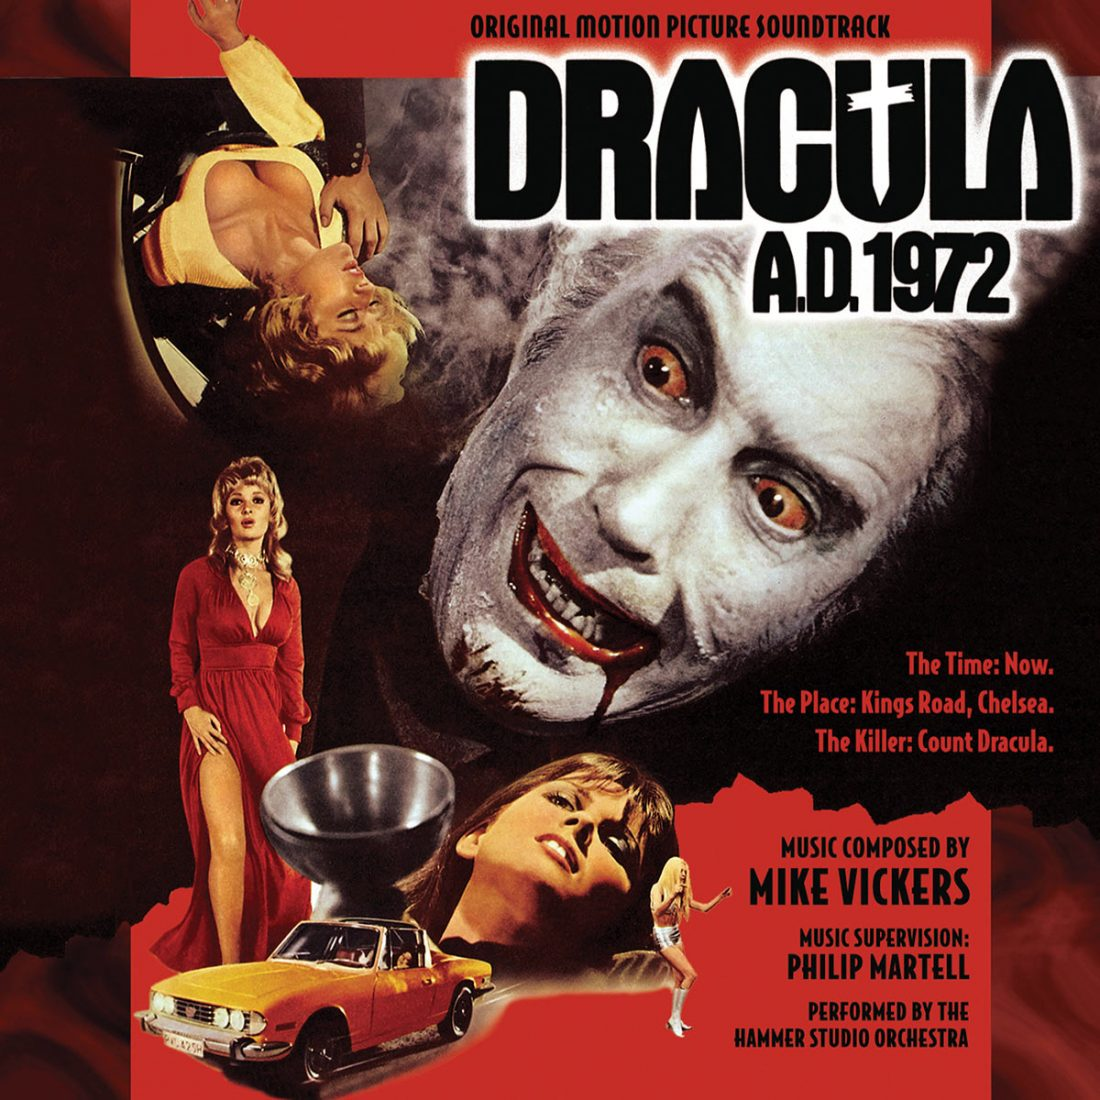 Dracula A.D. 1972 Original Motion Picture Soundtrack Composed by Mike Vickers